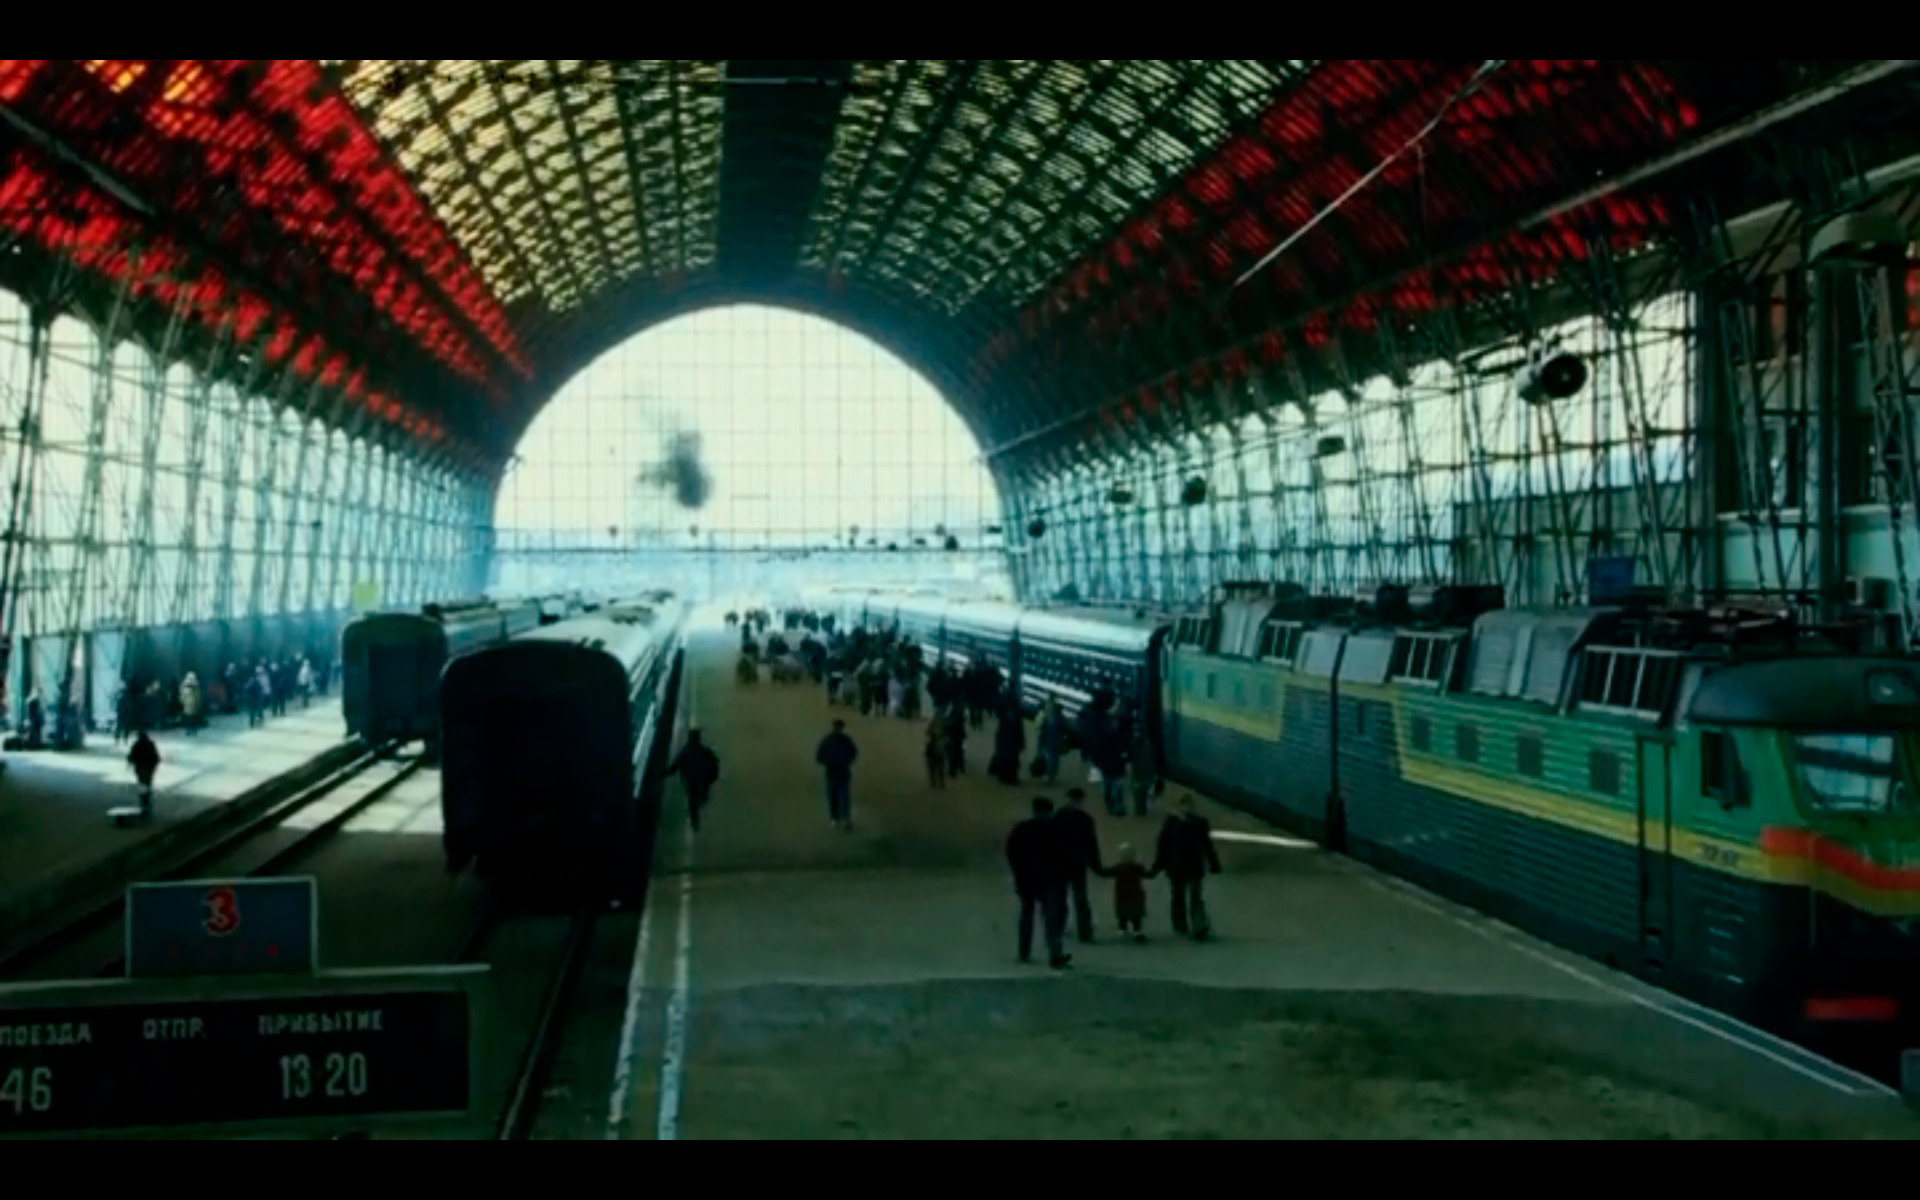 The real Kievsky Railway station where Bourne arrives circa 2004